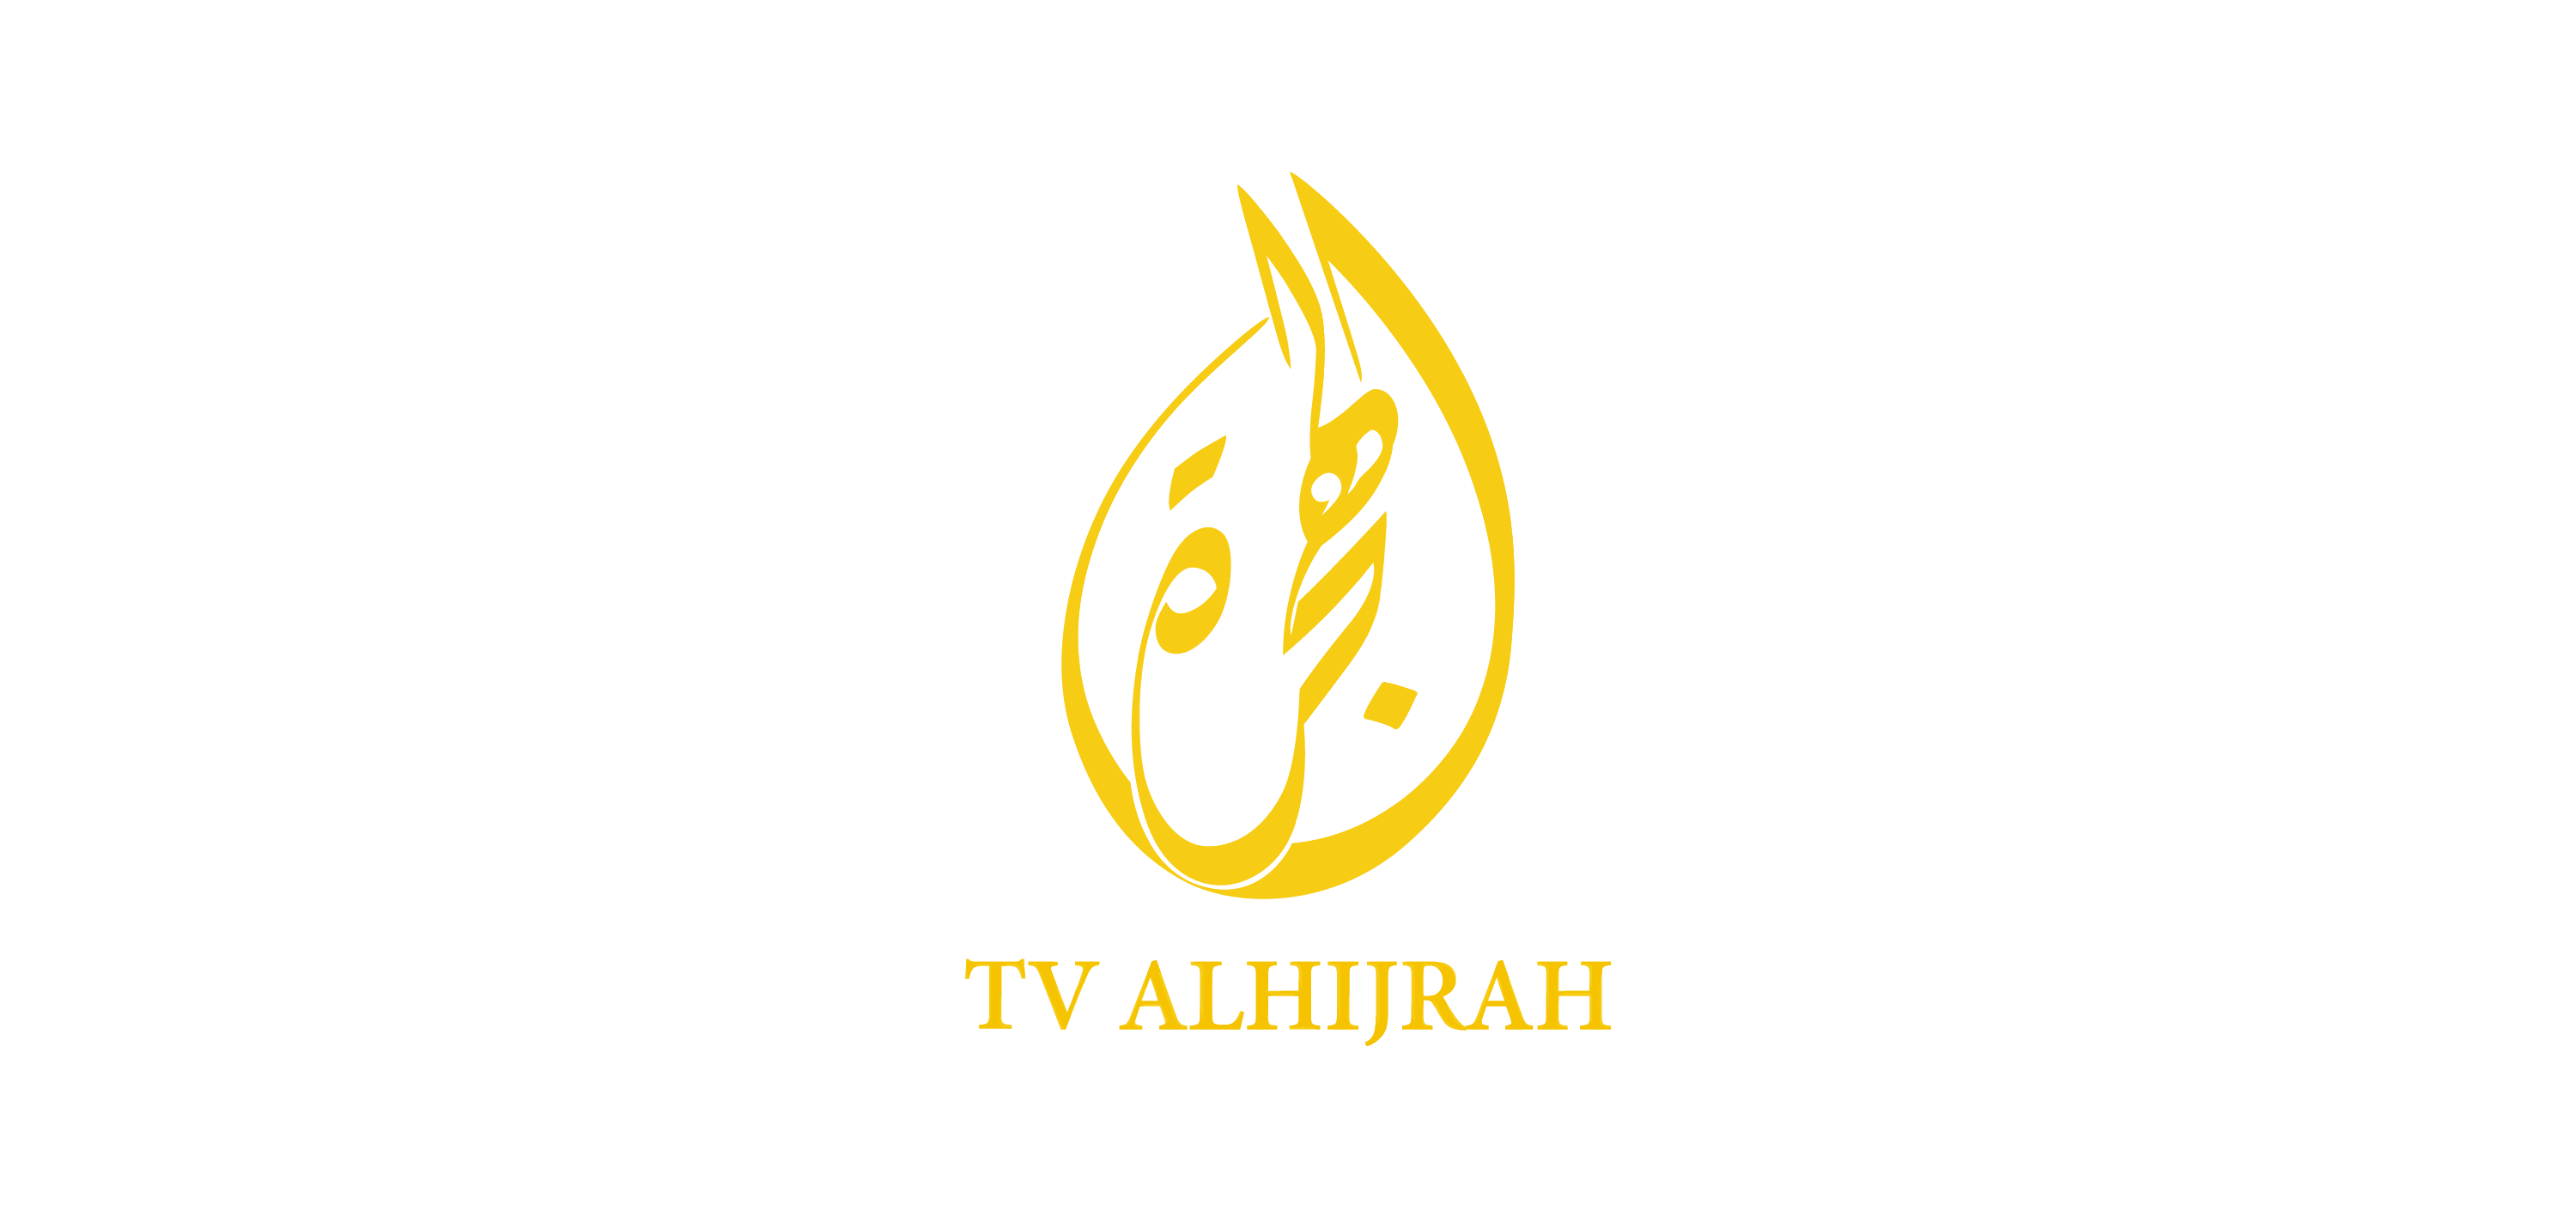 TV ALHIJRAH LOGO VECTOR